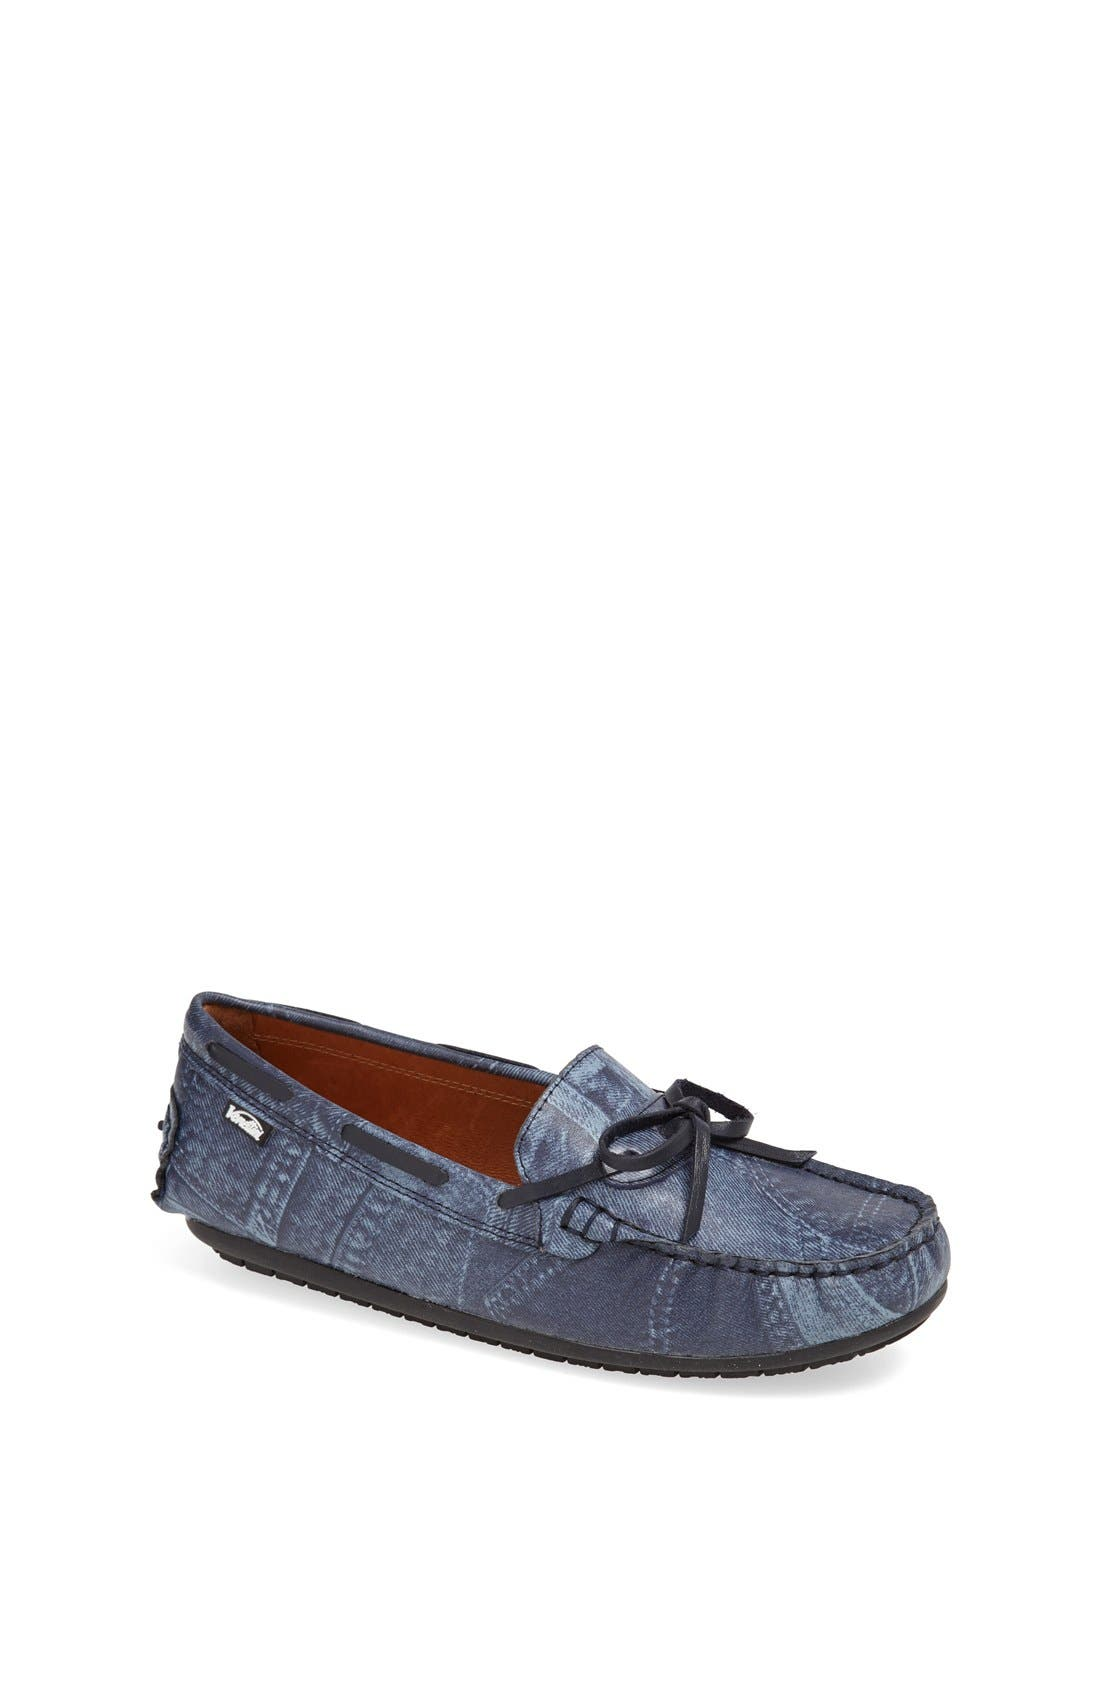 Alternate Image 1 Selected - Venettini 'Morgan' Loafer (Toddler, Little Kid & Big Kid)